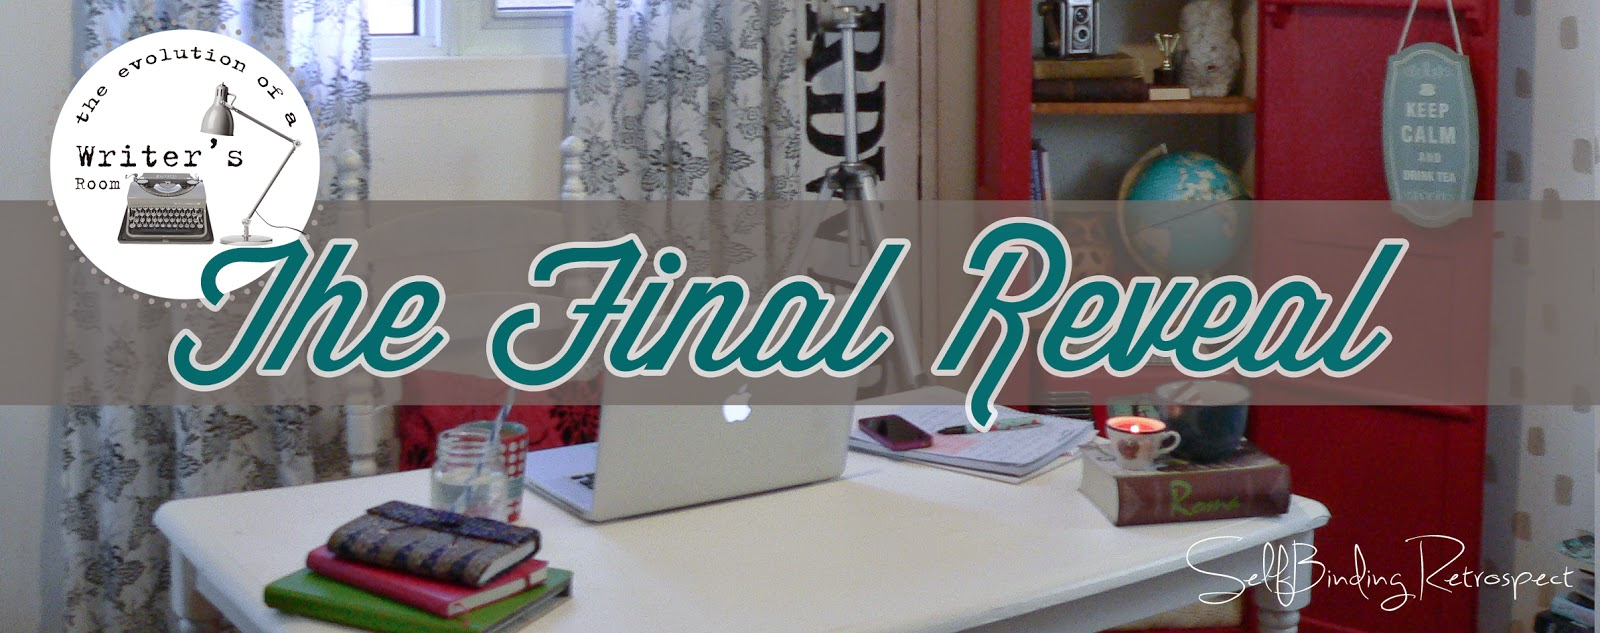 The evolution of a writer's room - the final reveal - SelfBinding Retrospect by Alanna Rusnak